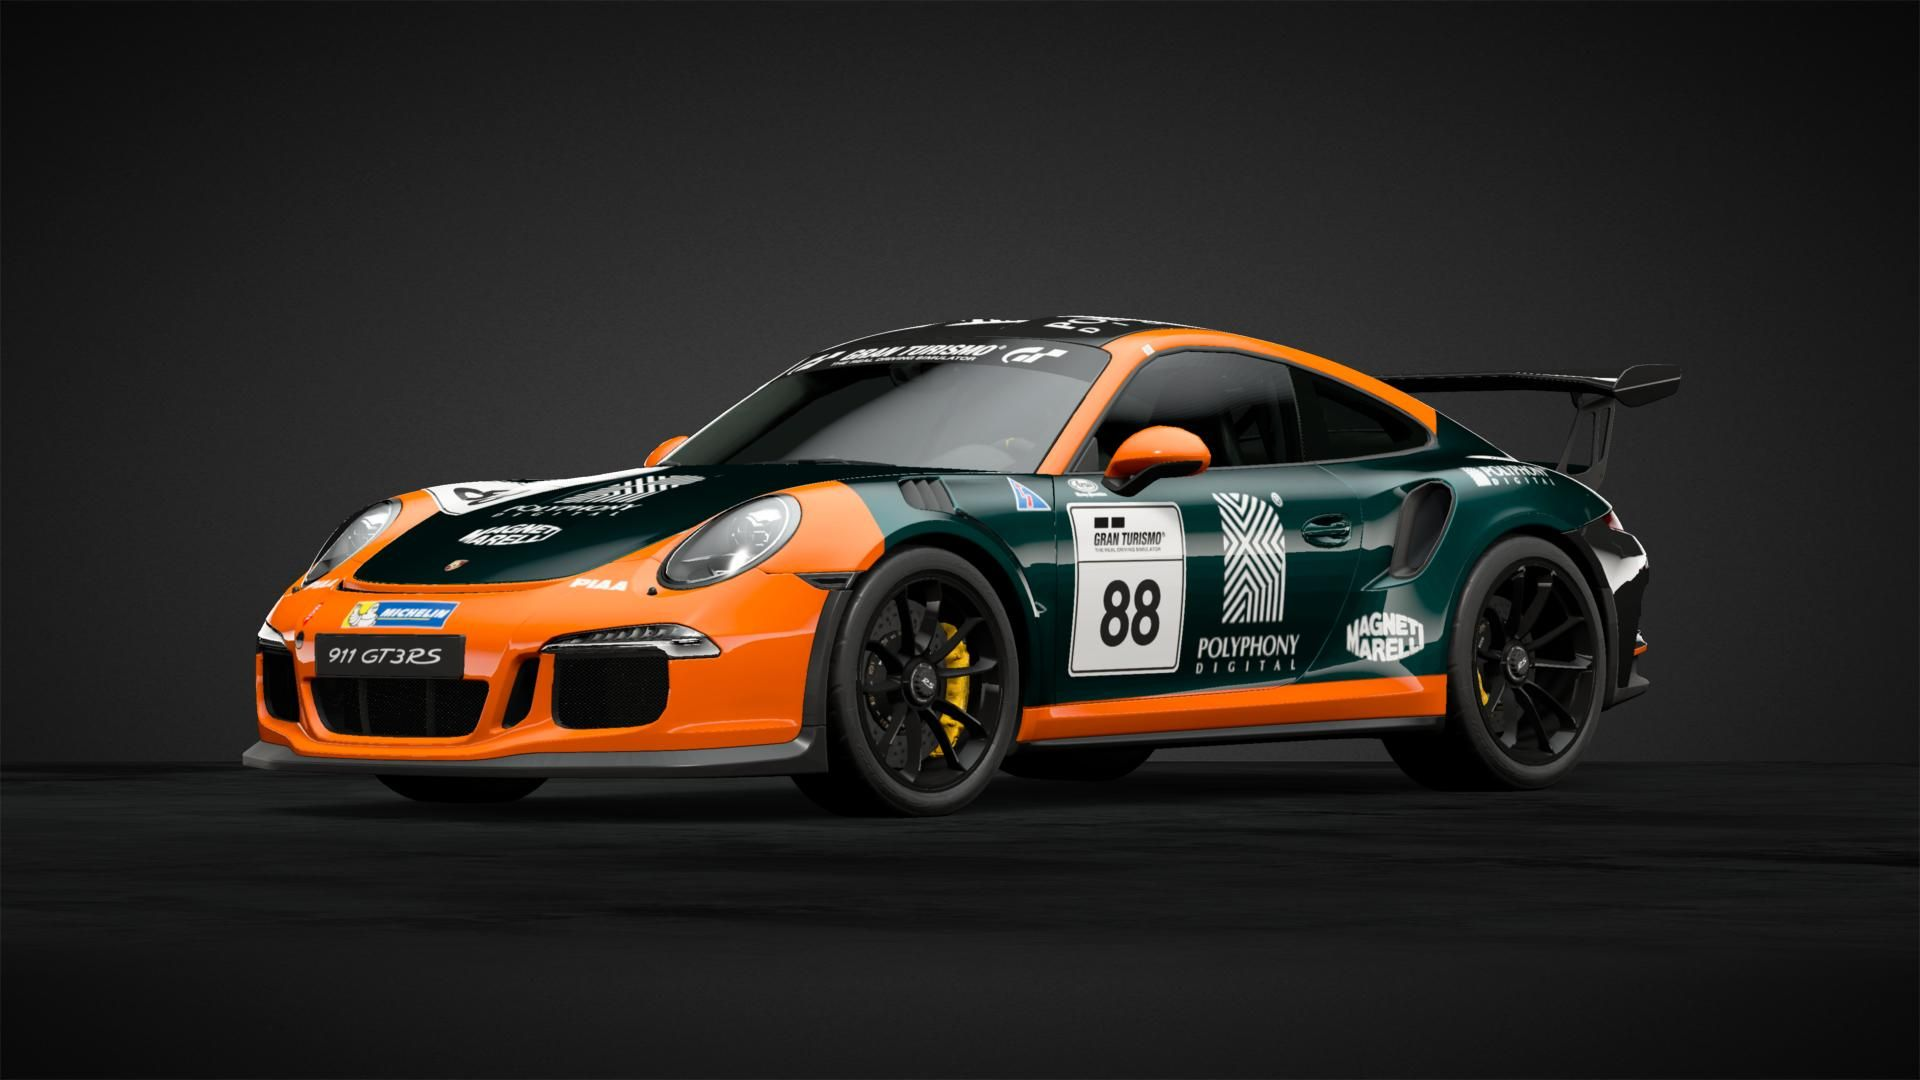 Porsche Gt3 Rs 991 Livery Design For Gran Turismo U0026 39 S Gt Sport On Sony Playstation 4